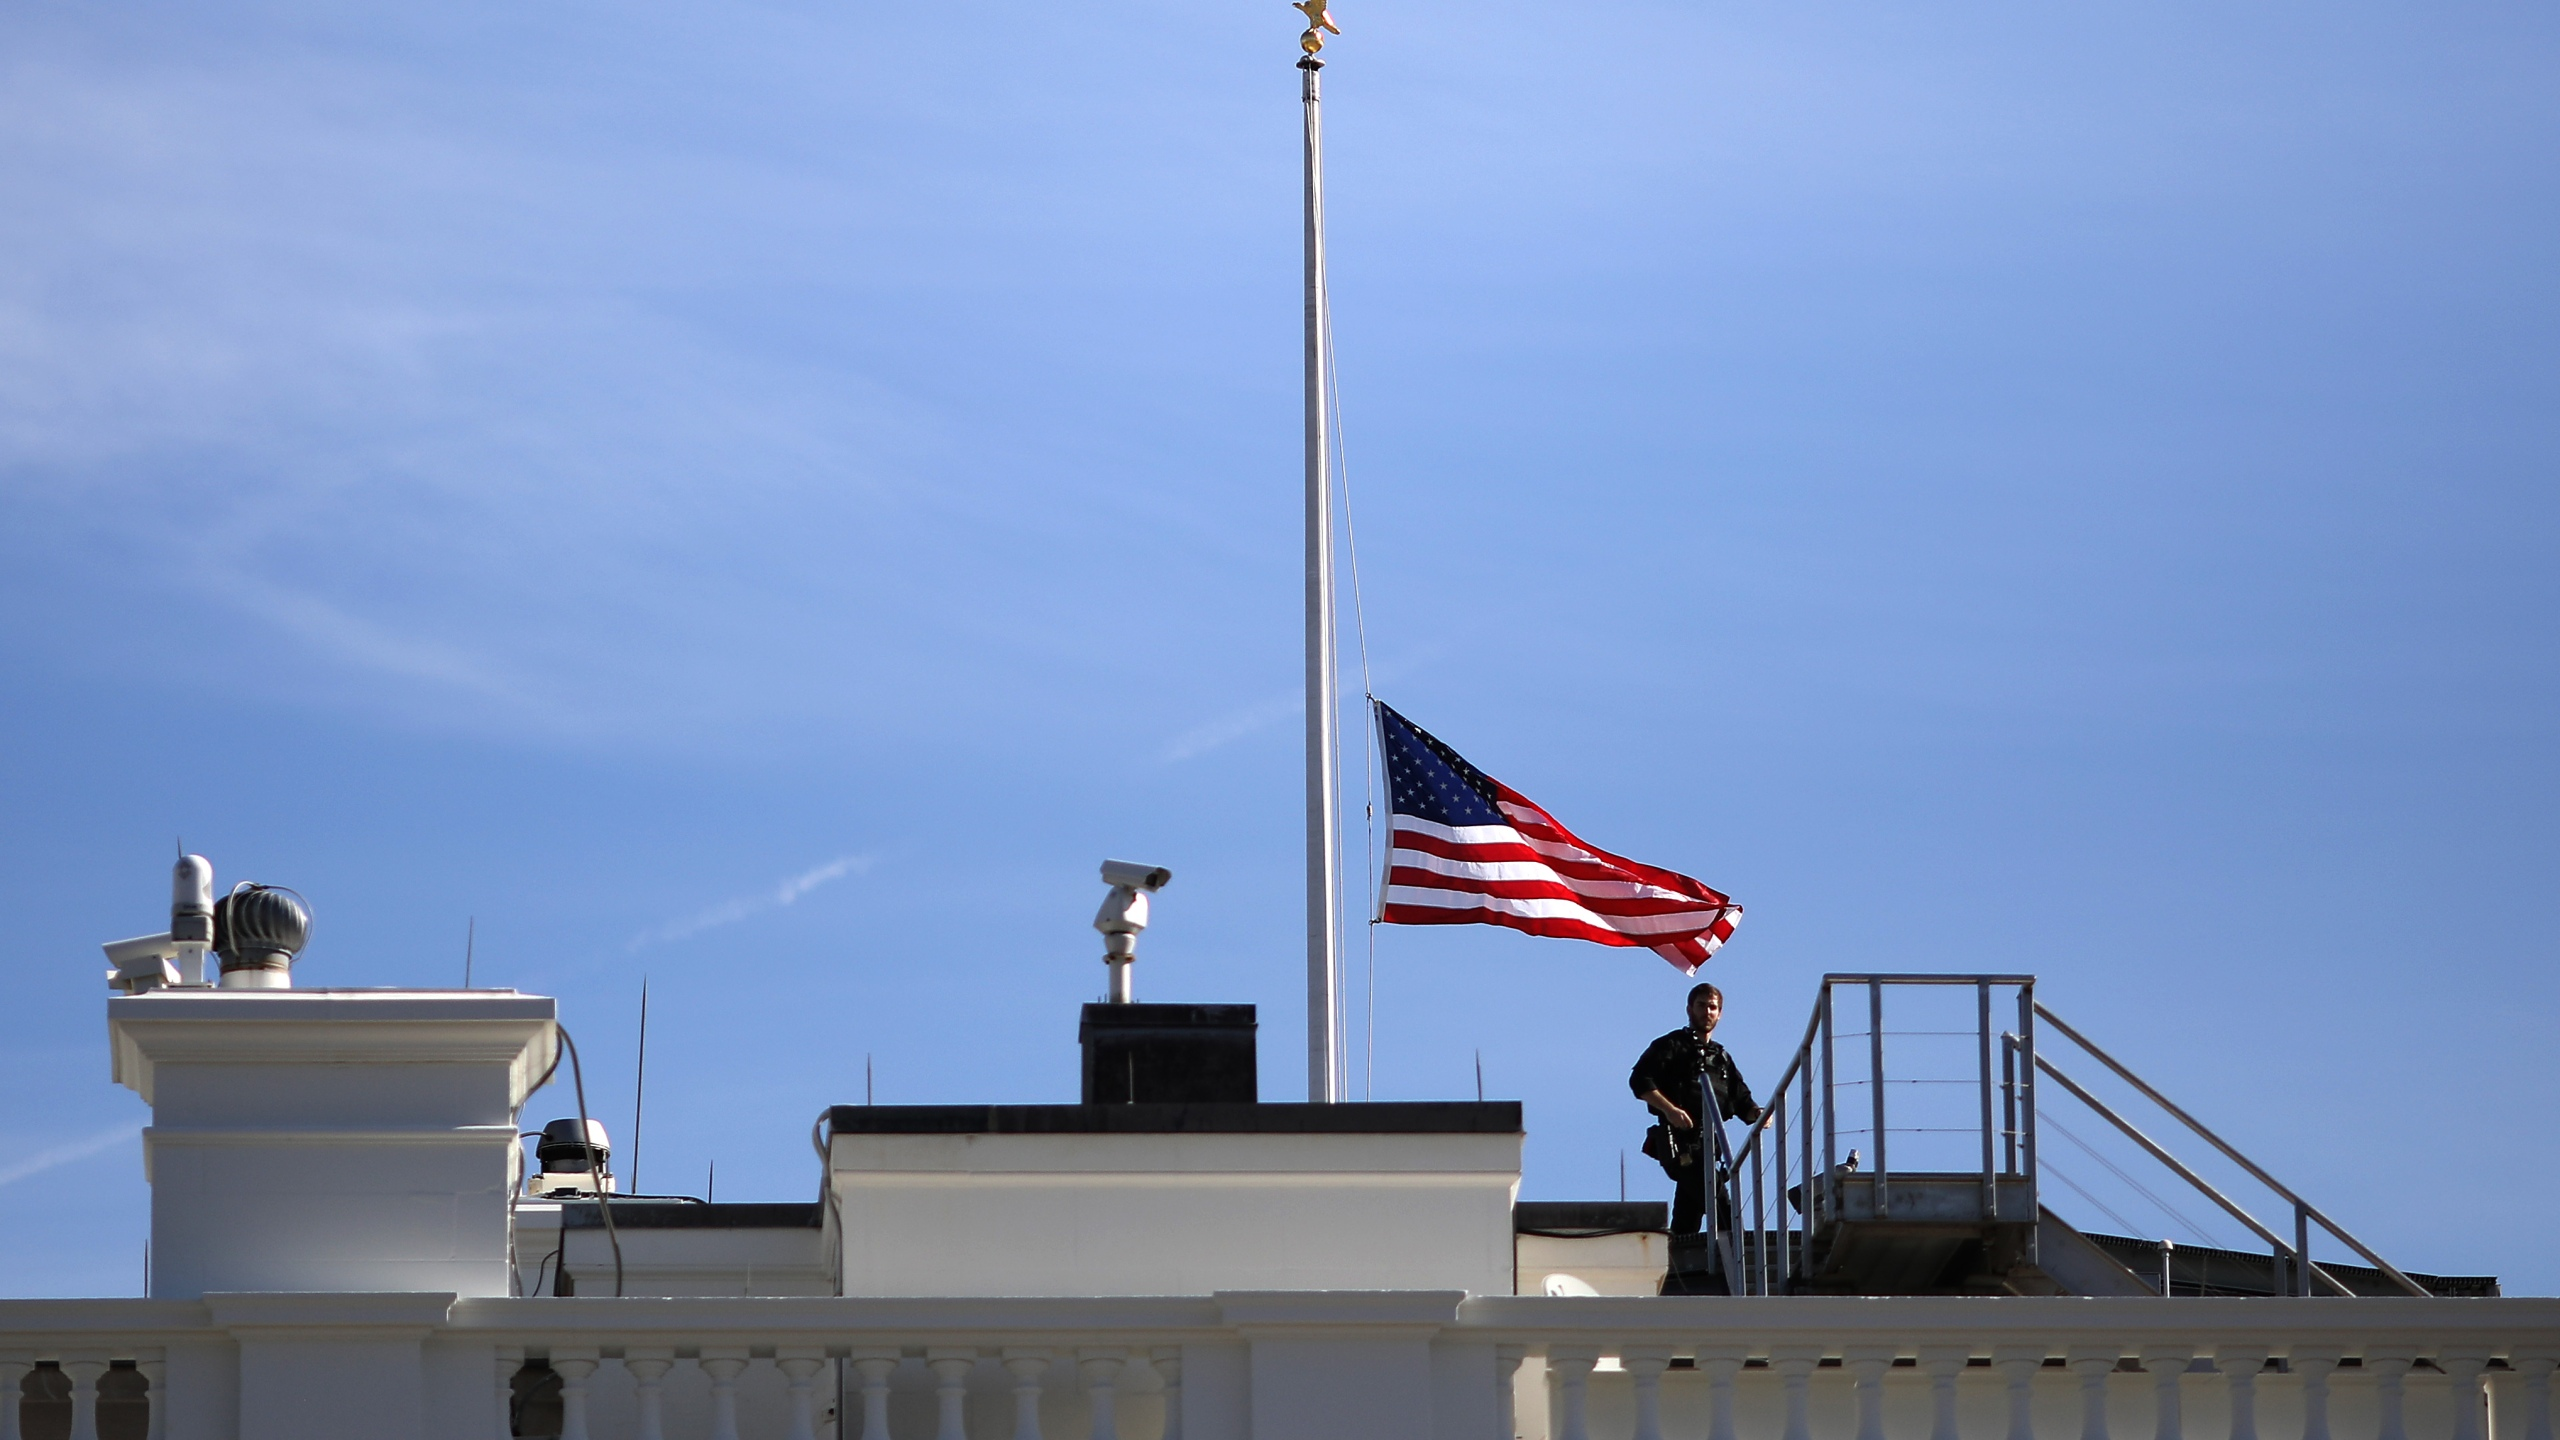 The American flag over the White House flies at half staff following the shooting in Thousand Oaks late Wednesday evening on November 08, 2018 in Washington, DC. (Credit: Win McNamee/Getty Images)